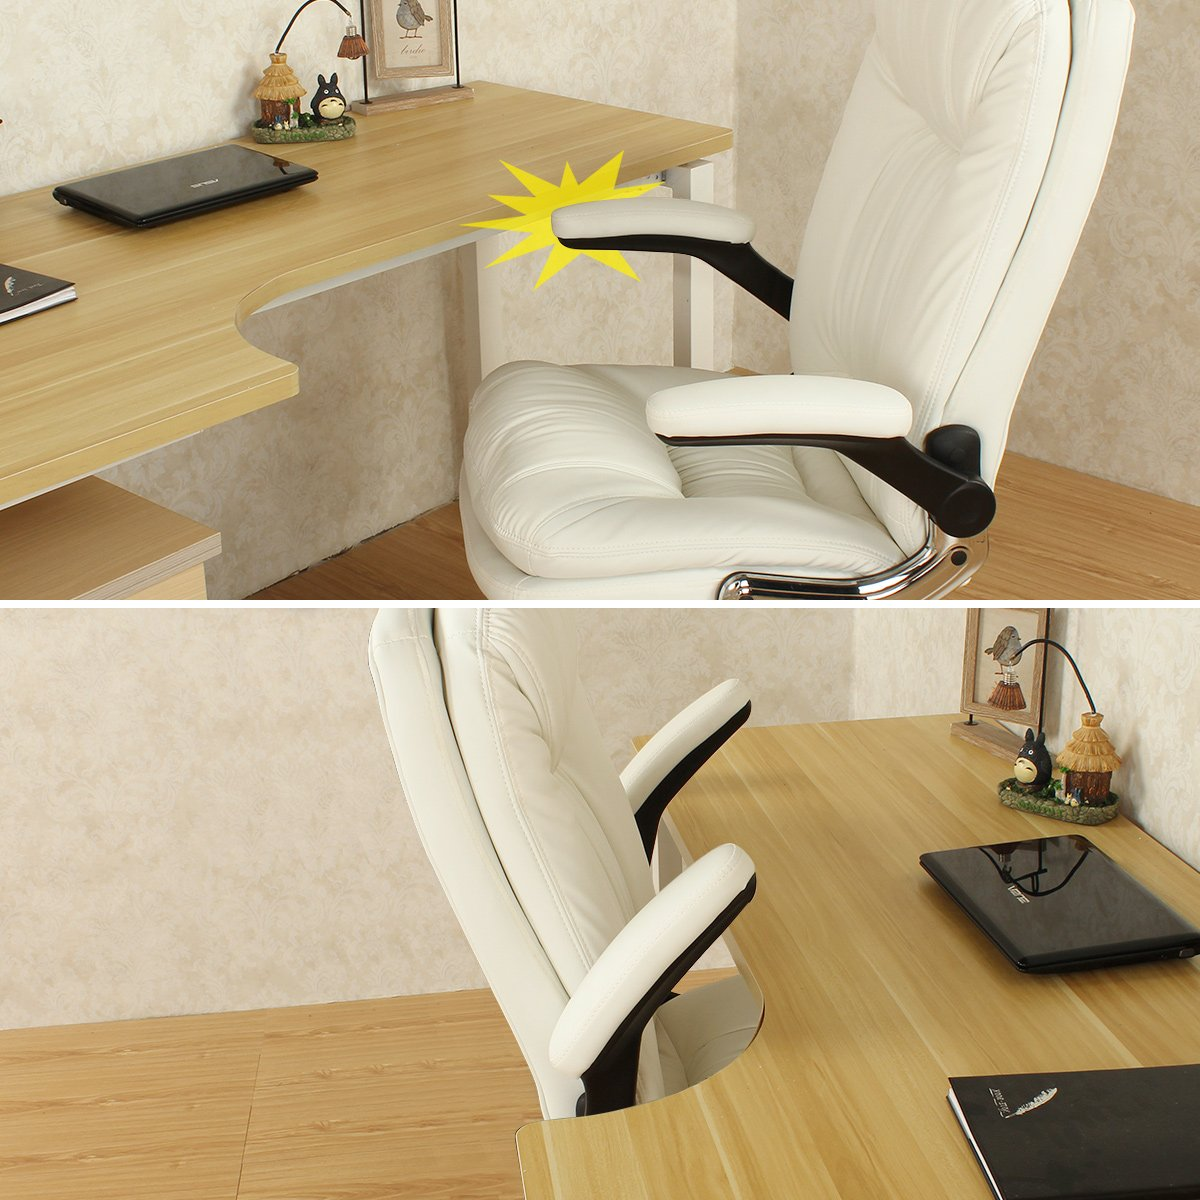 YAMASORO Ergonomic Office Chair with Flip-Up Arms and Comfy Headrest PU Leather High-Back Computer Desk Chair Big and Tall Capacity 330lbs White by YAMASORO (Image #4)